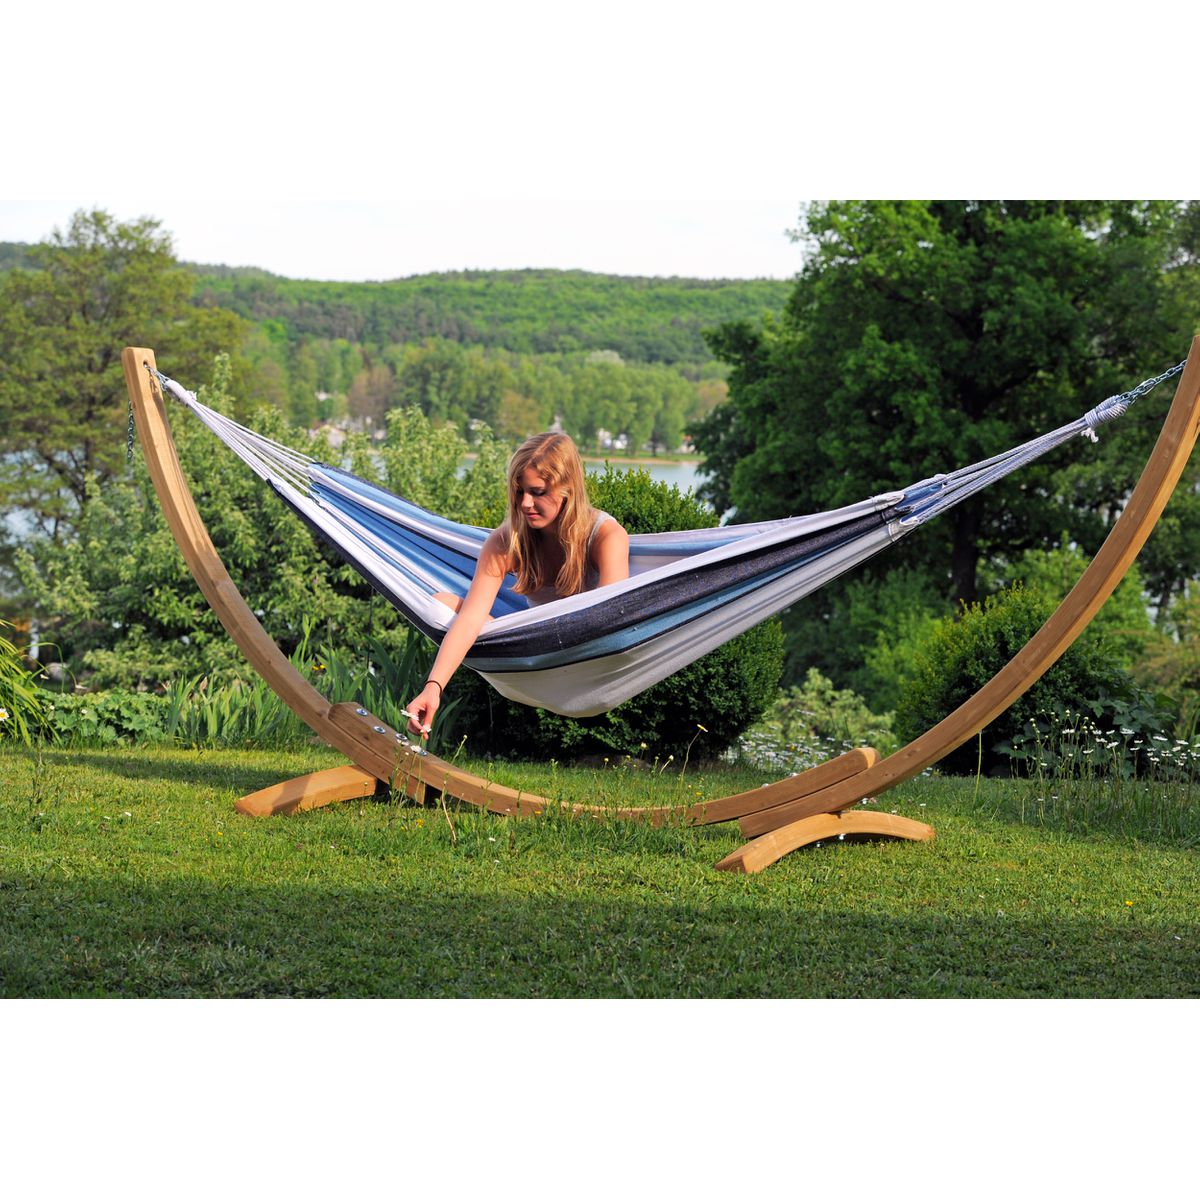 Amazonas Apollo Marine Hammock and Wooden Stand Set - Ruby's Garden Boutique